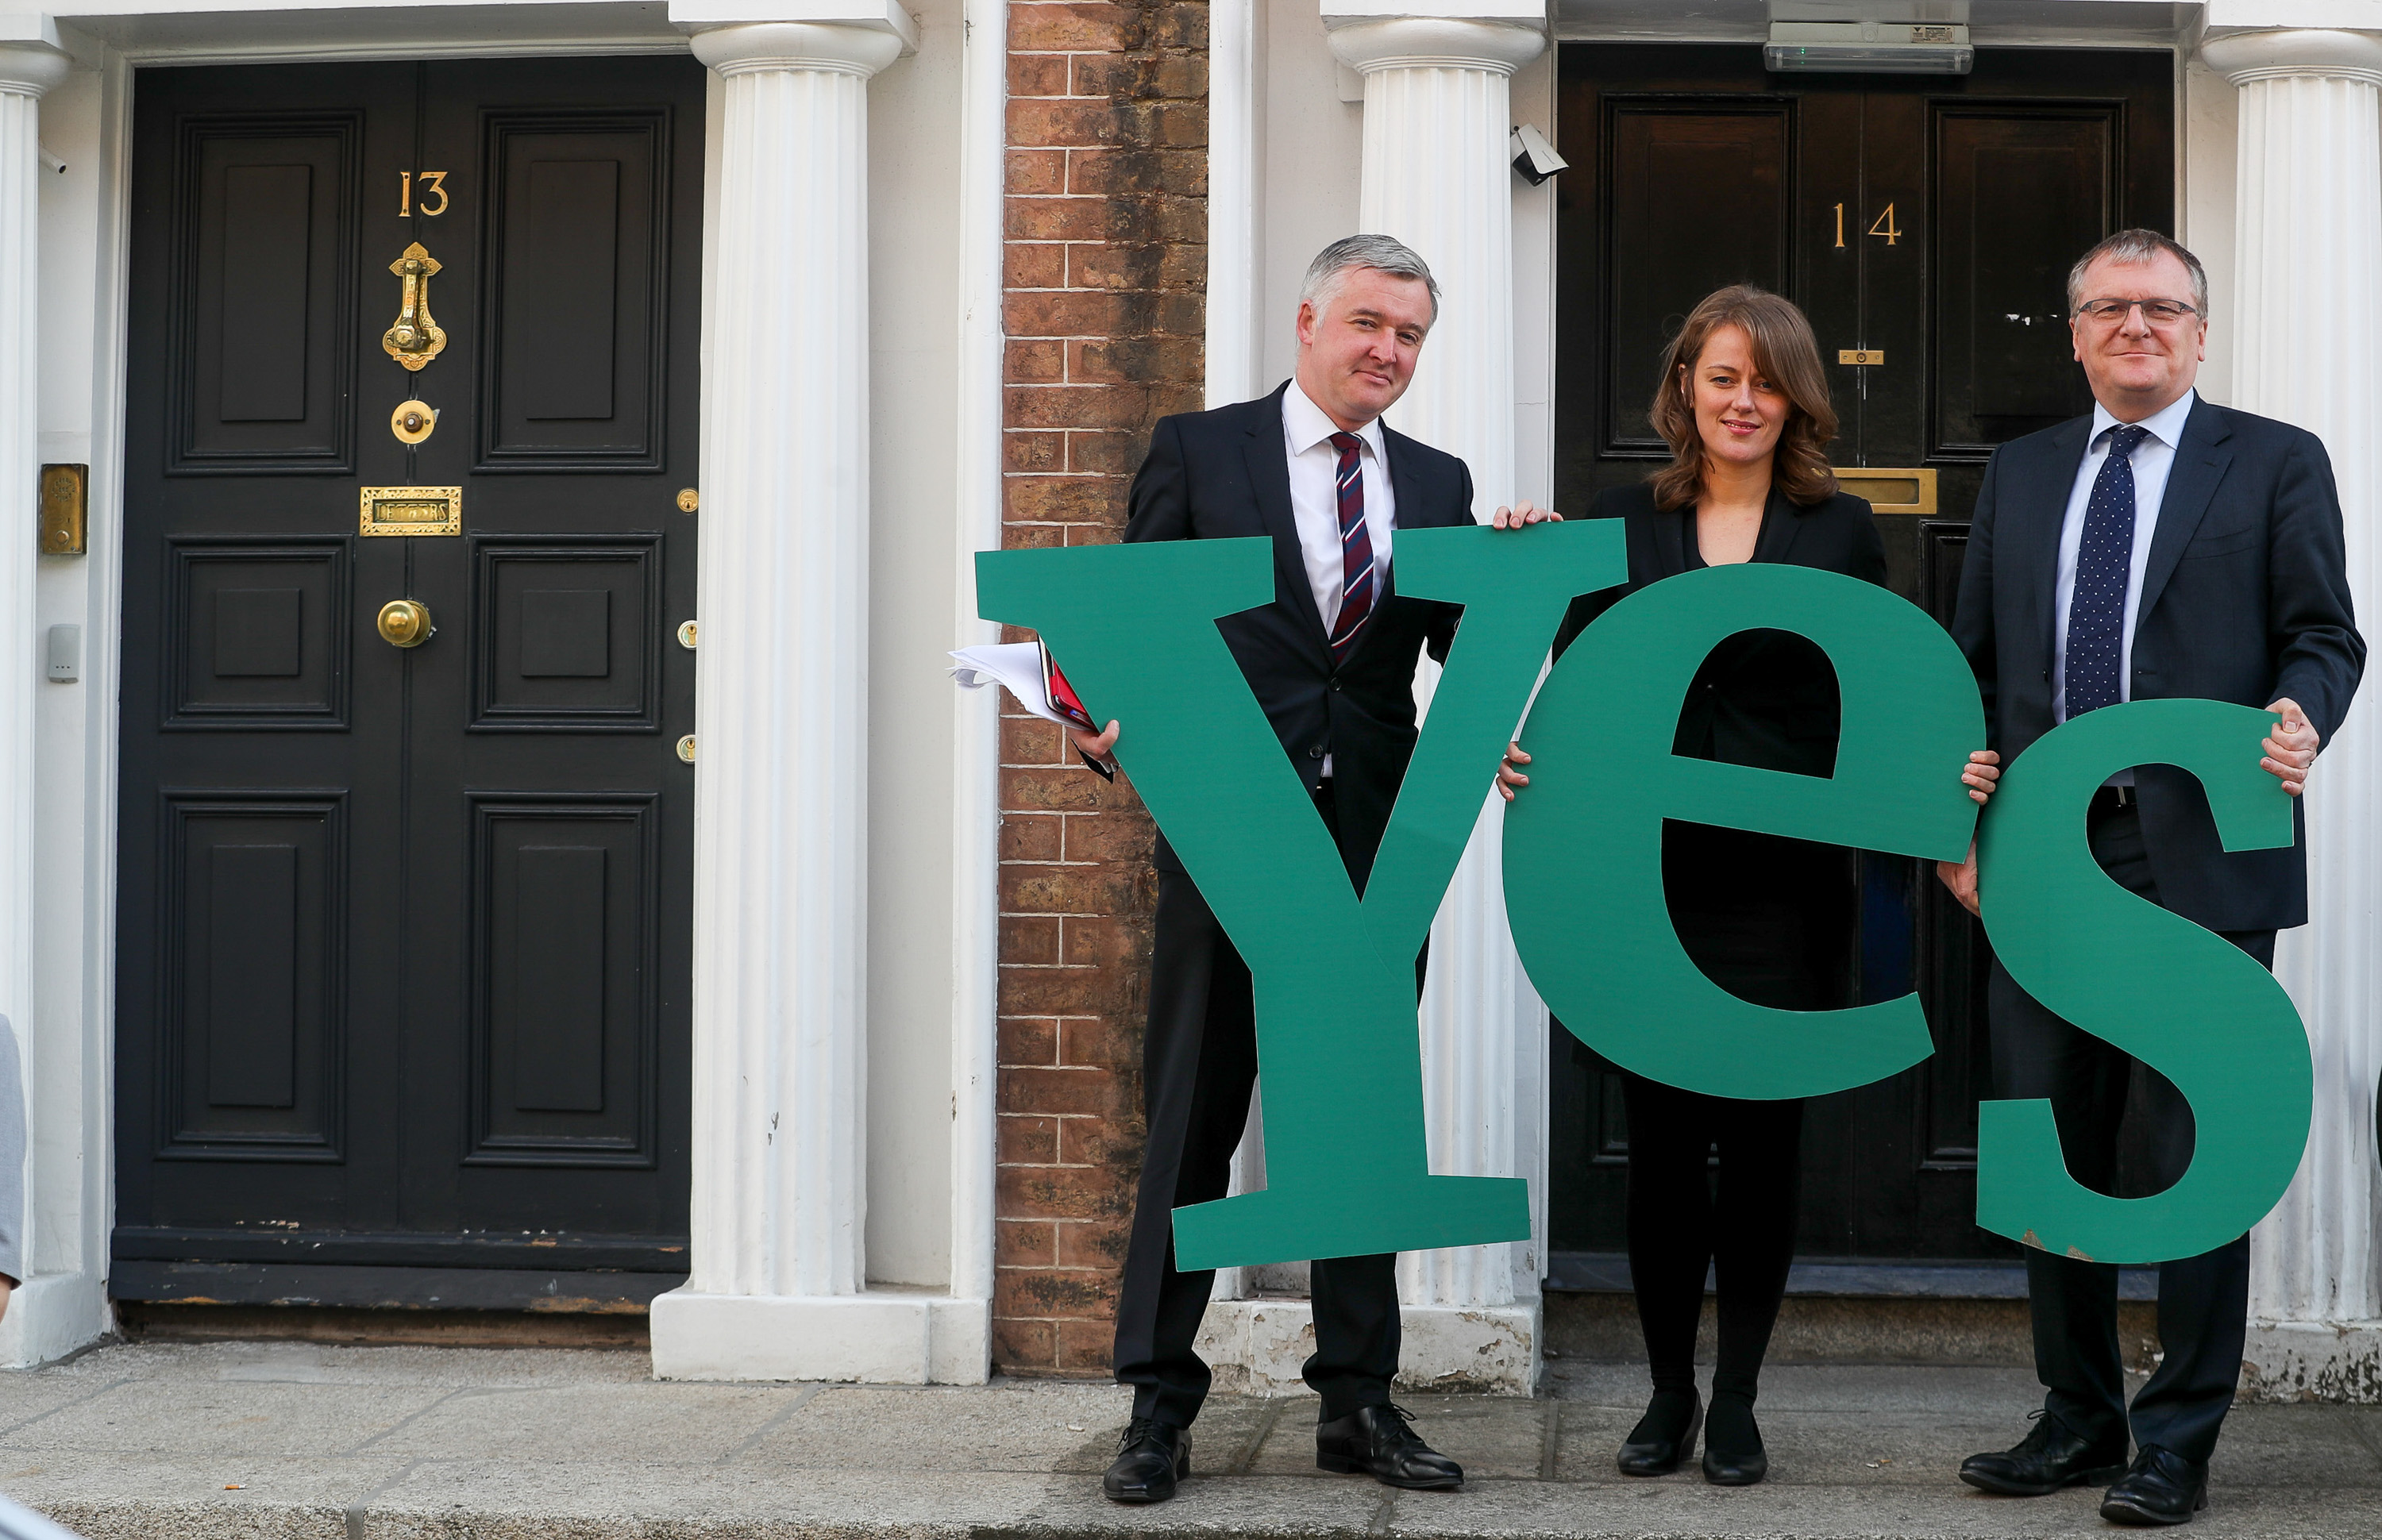 Lawyers fro Yes press image